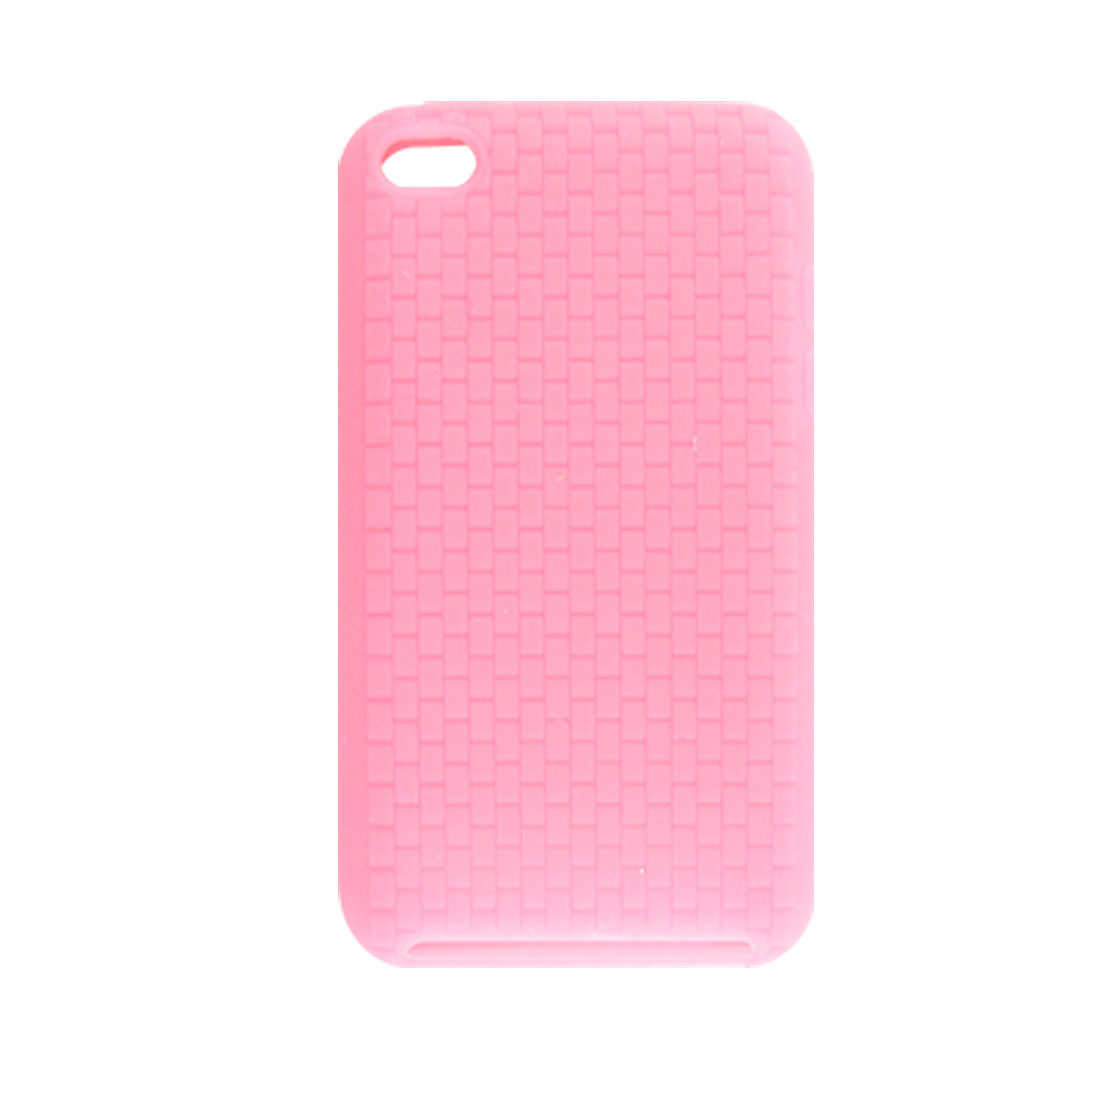 Protective Textured Silicone Skin Case Pink for iPod Touch 4G